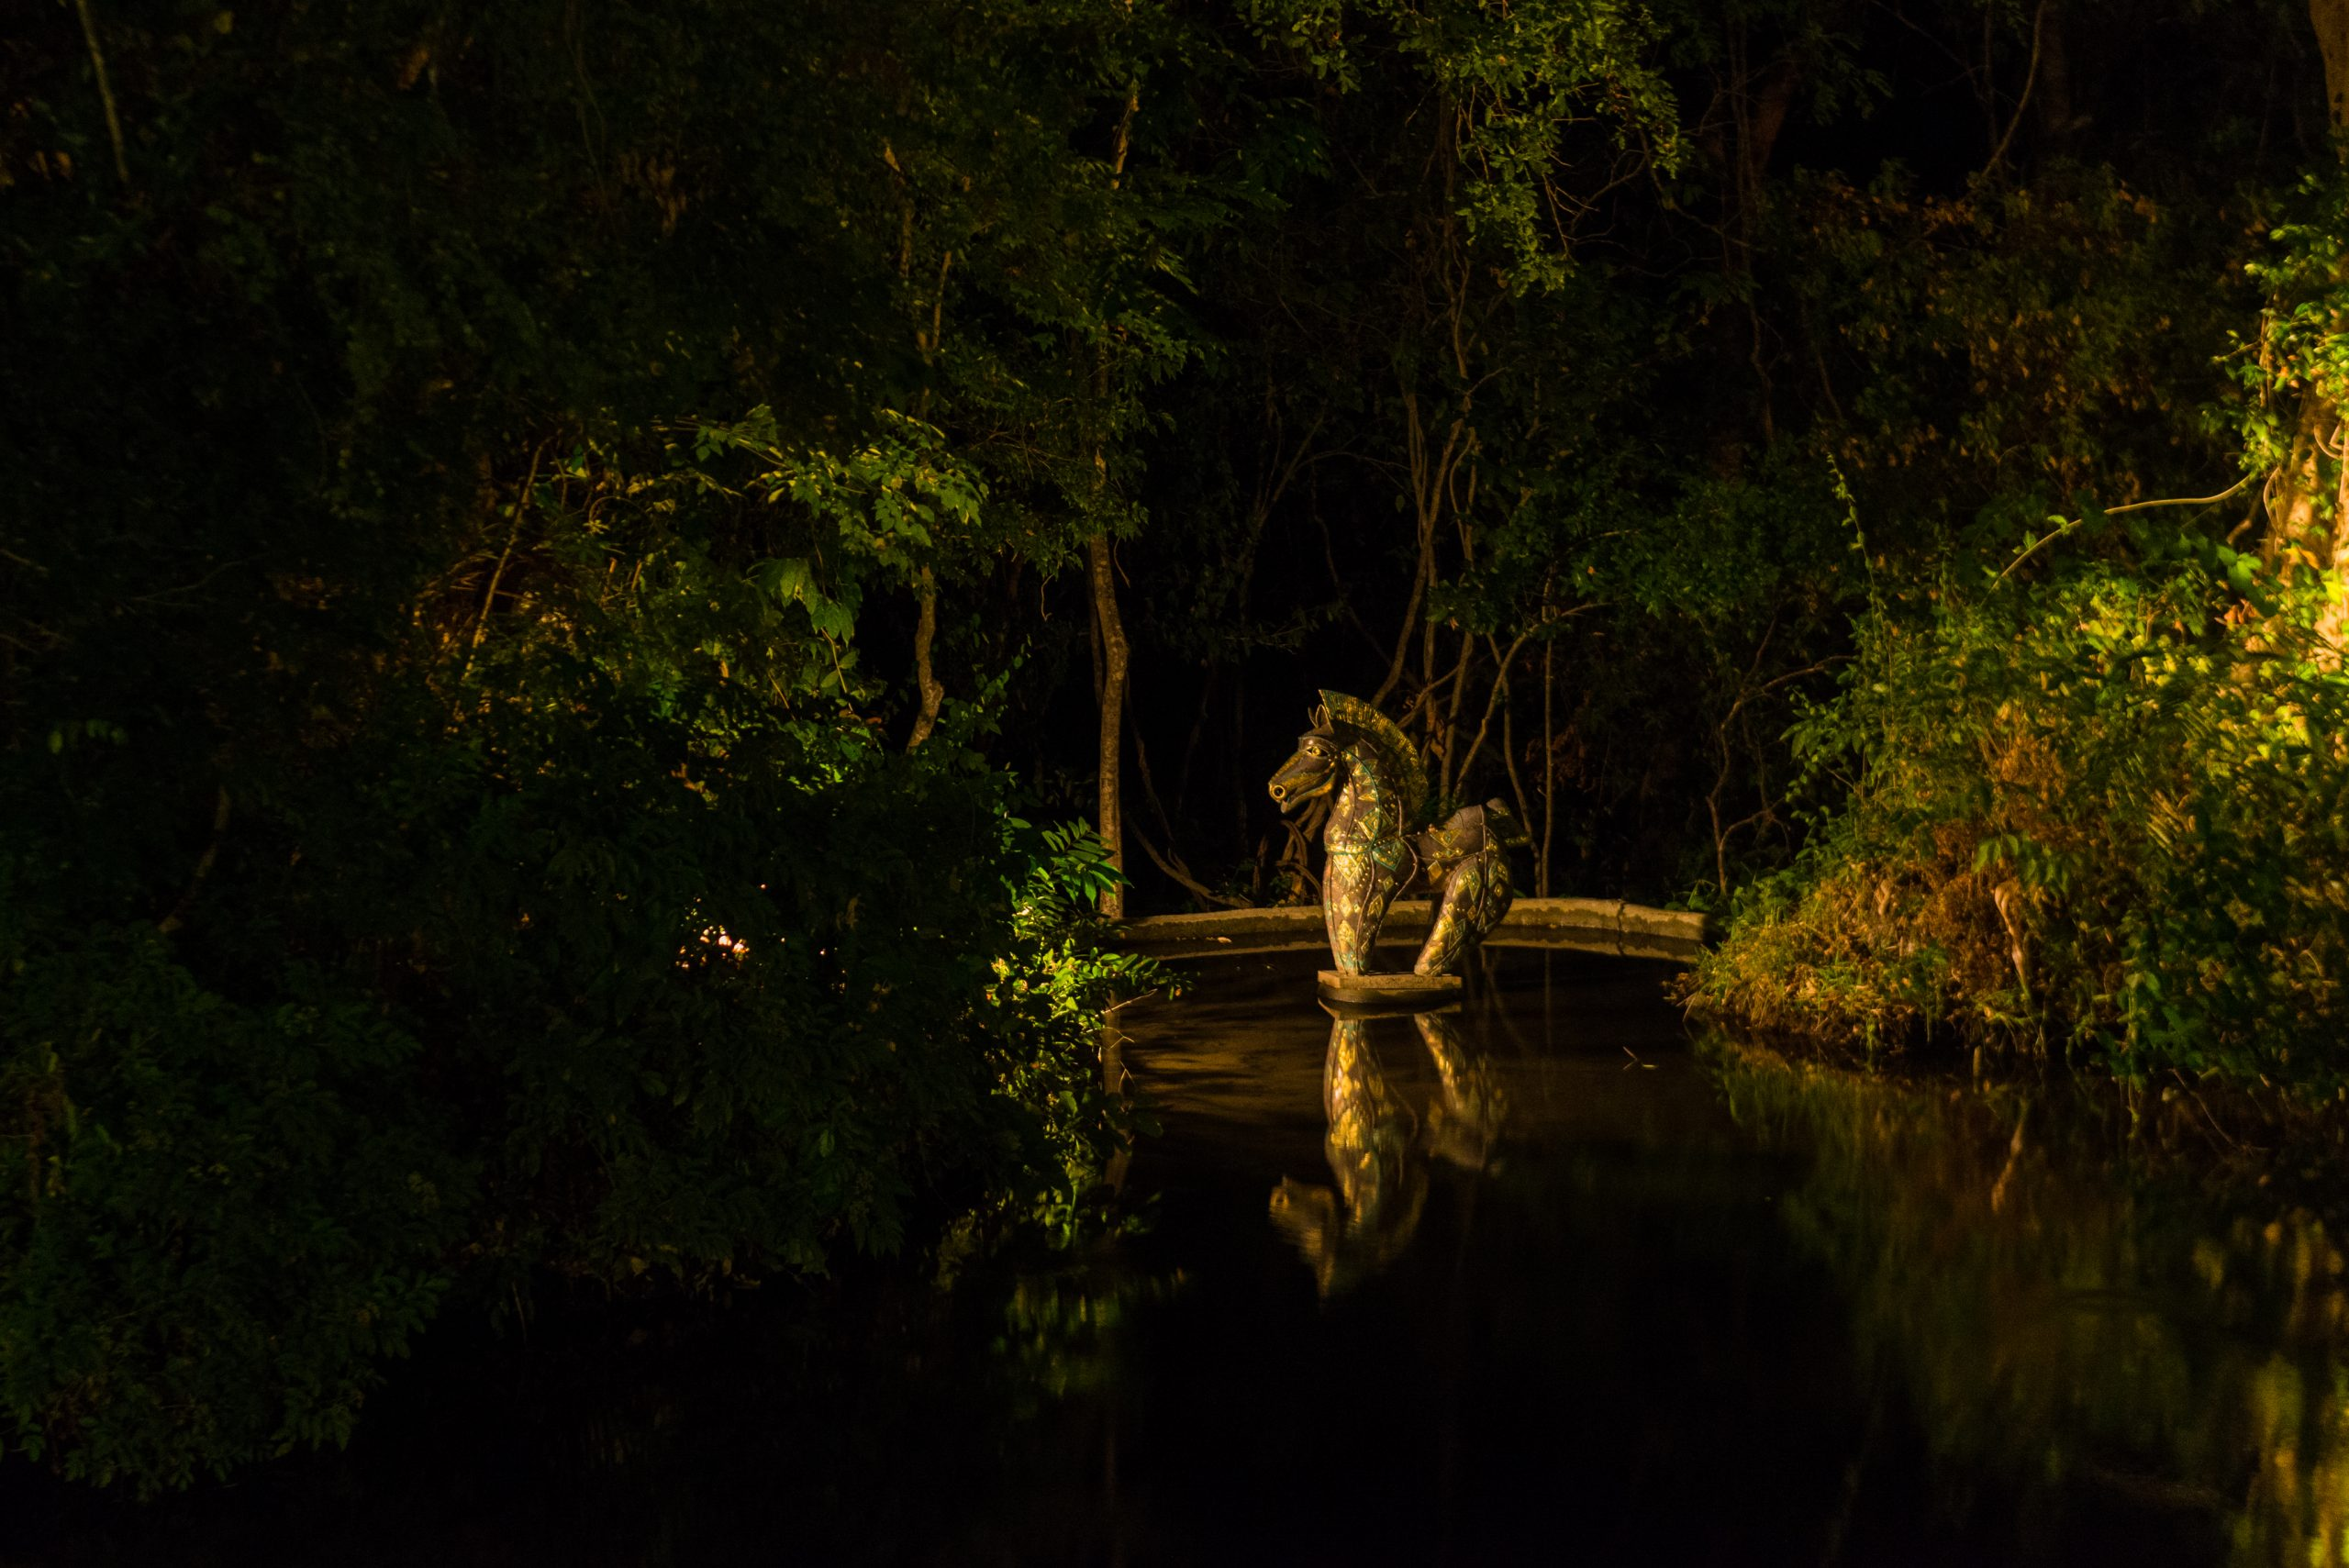 Horse sculpture located in the art and nature forest at Diyabubula. This image taken at the night has captured the water, greenery of the forest and the beautiful golden sculpture